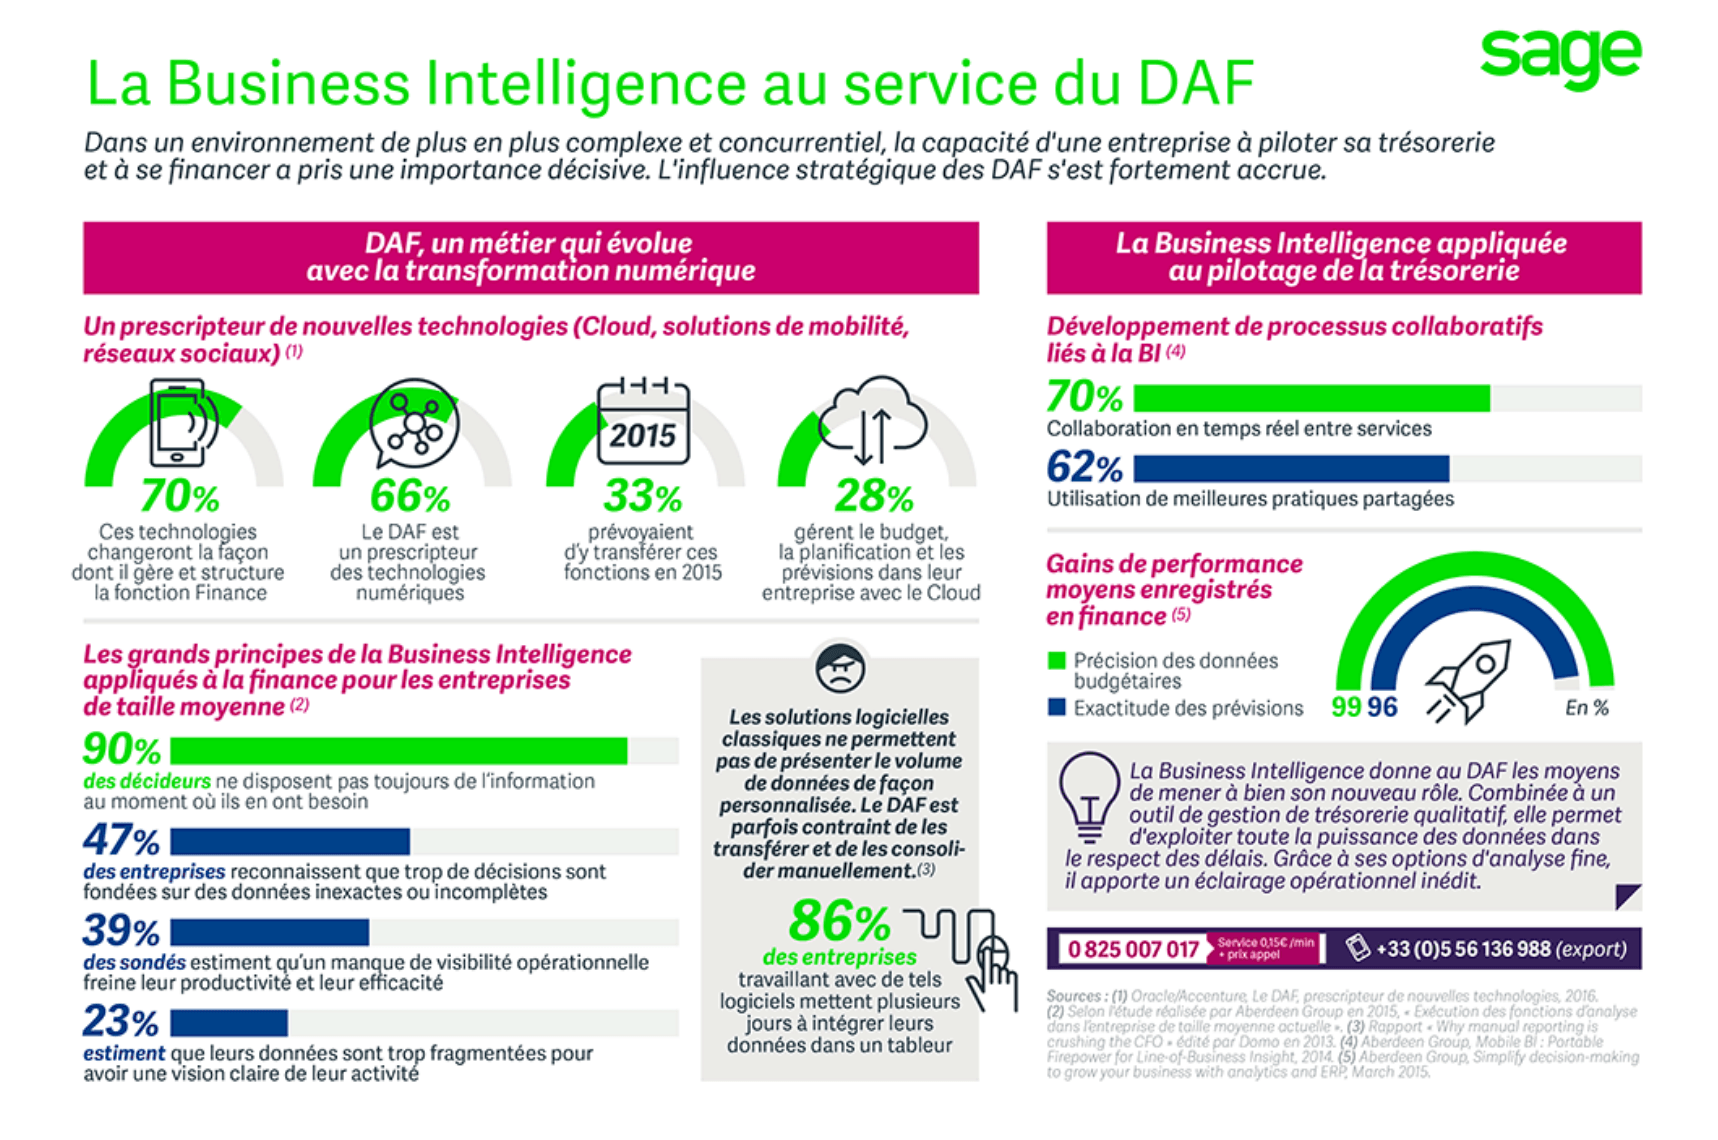 https://blog.sage.fr/business-intelligence-daf-tresorier/